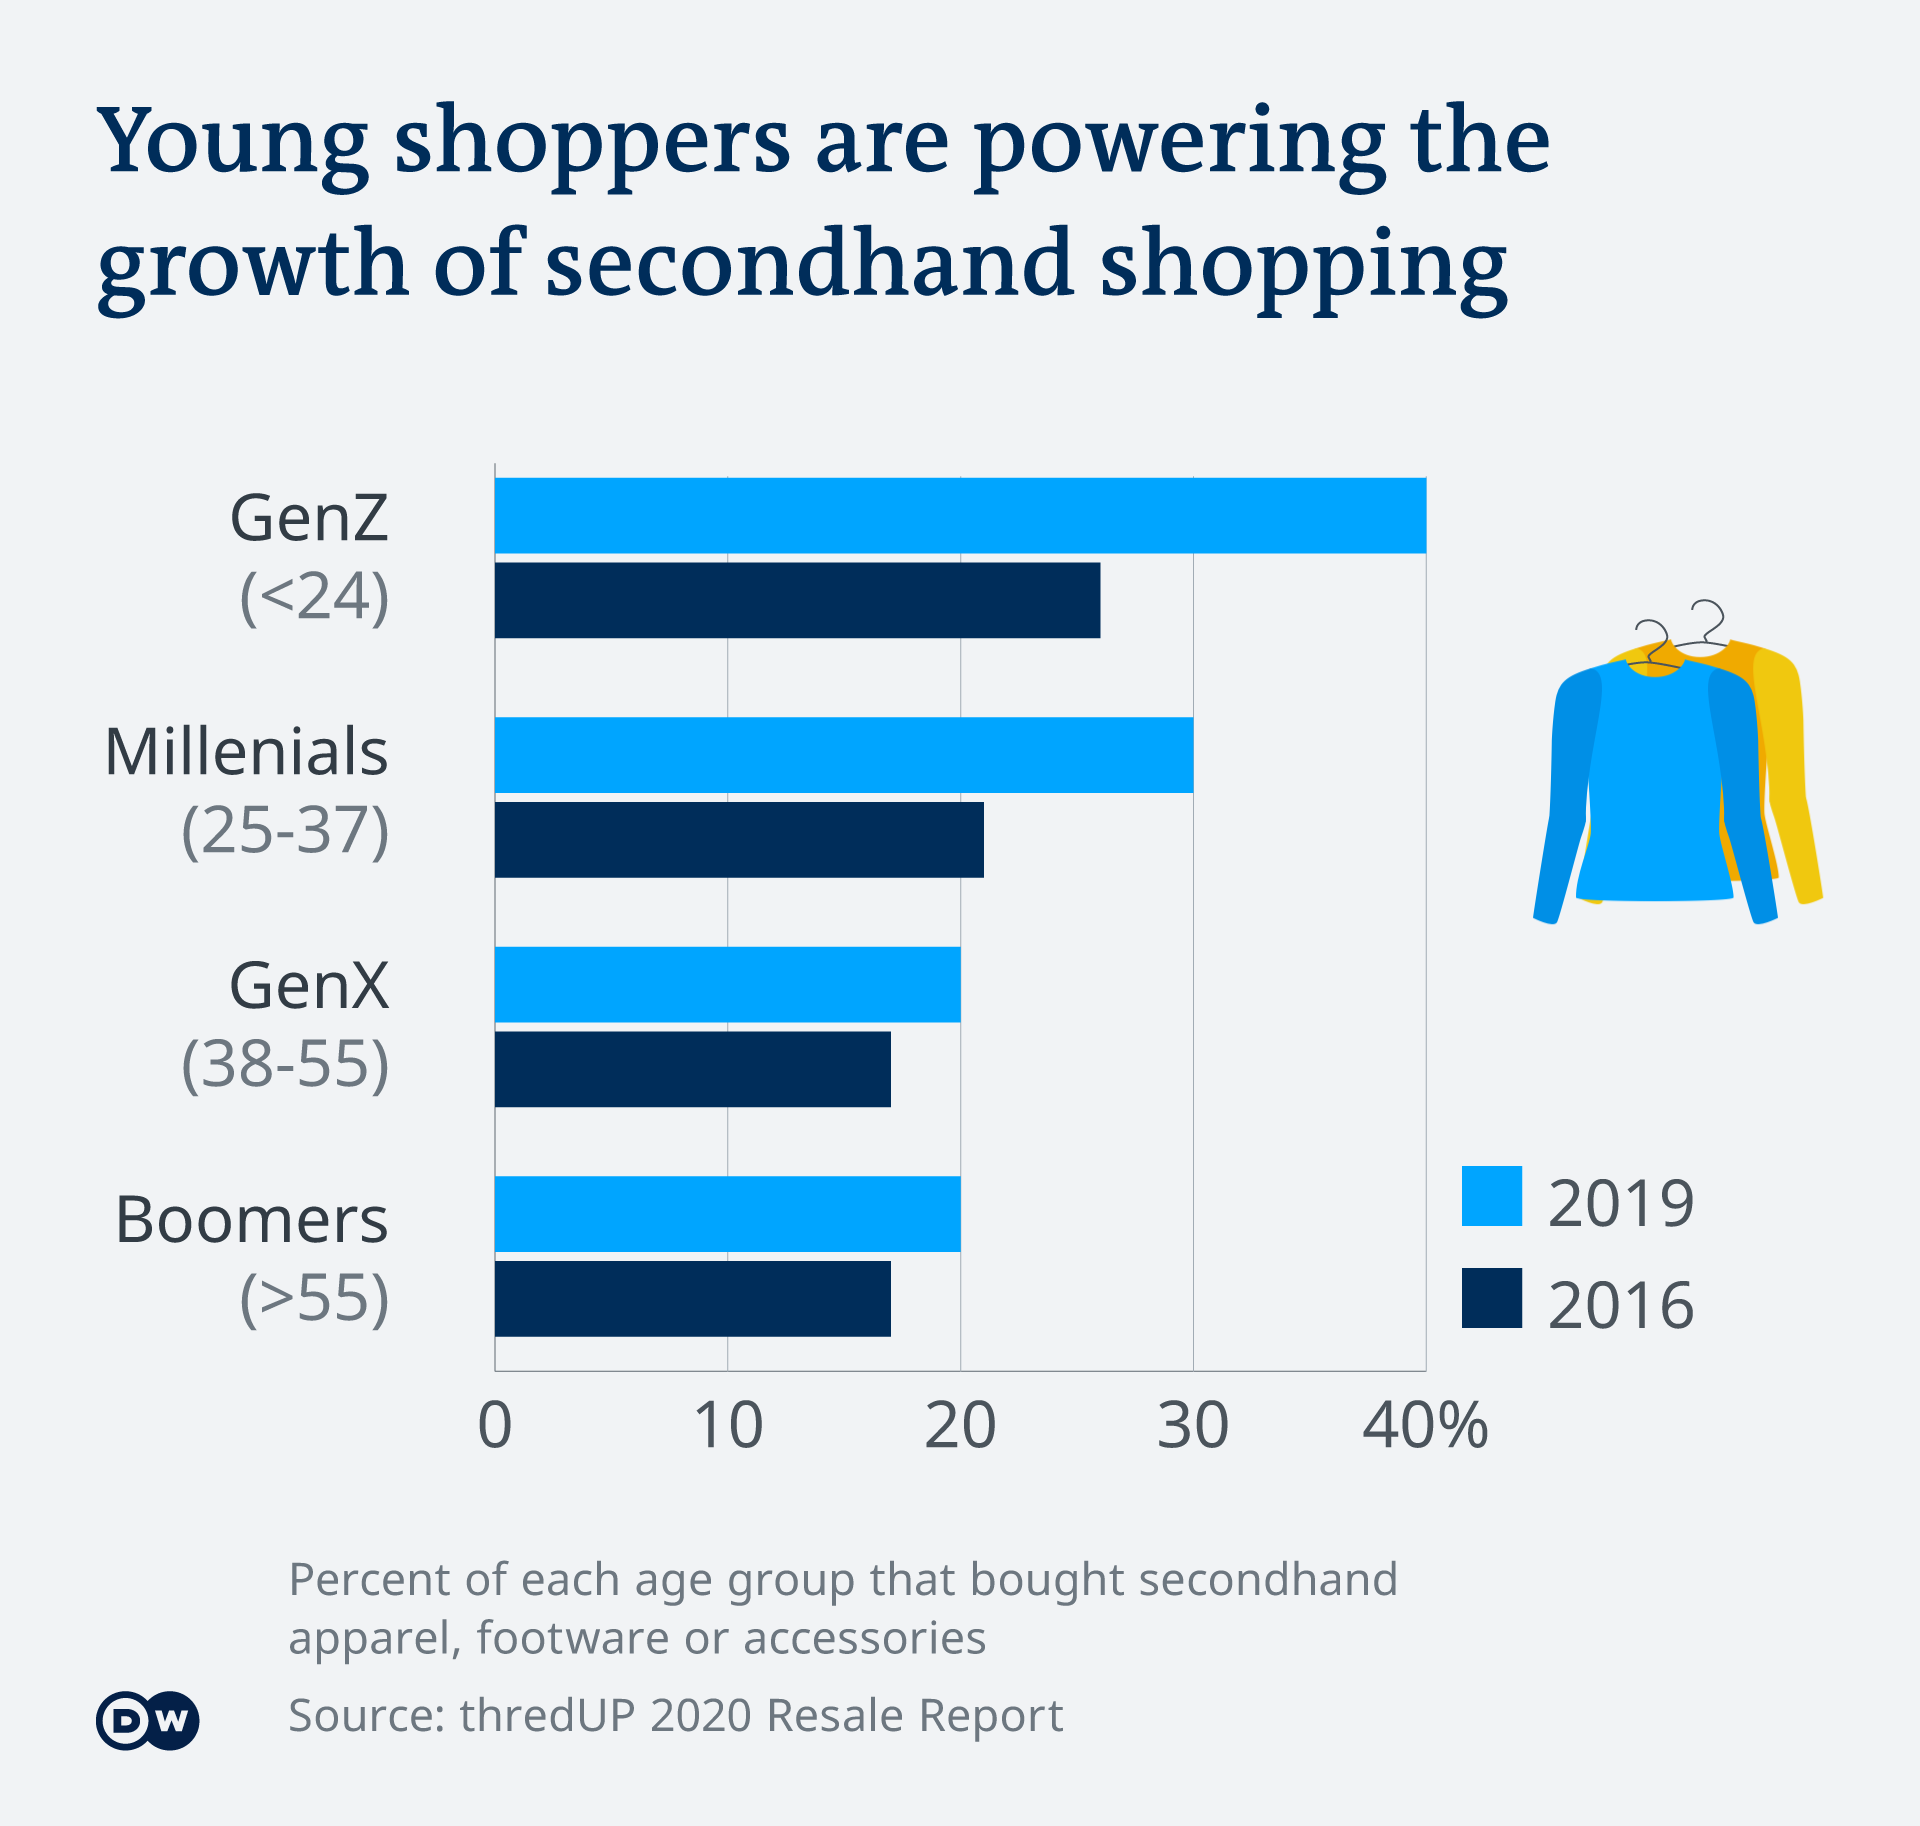 Infographic showing the growth of seconhand shopping